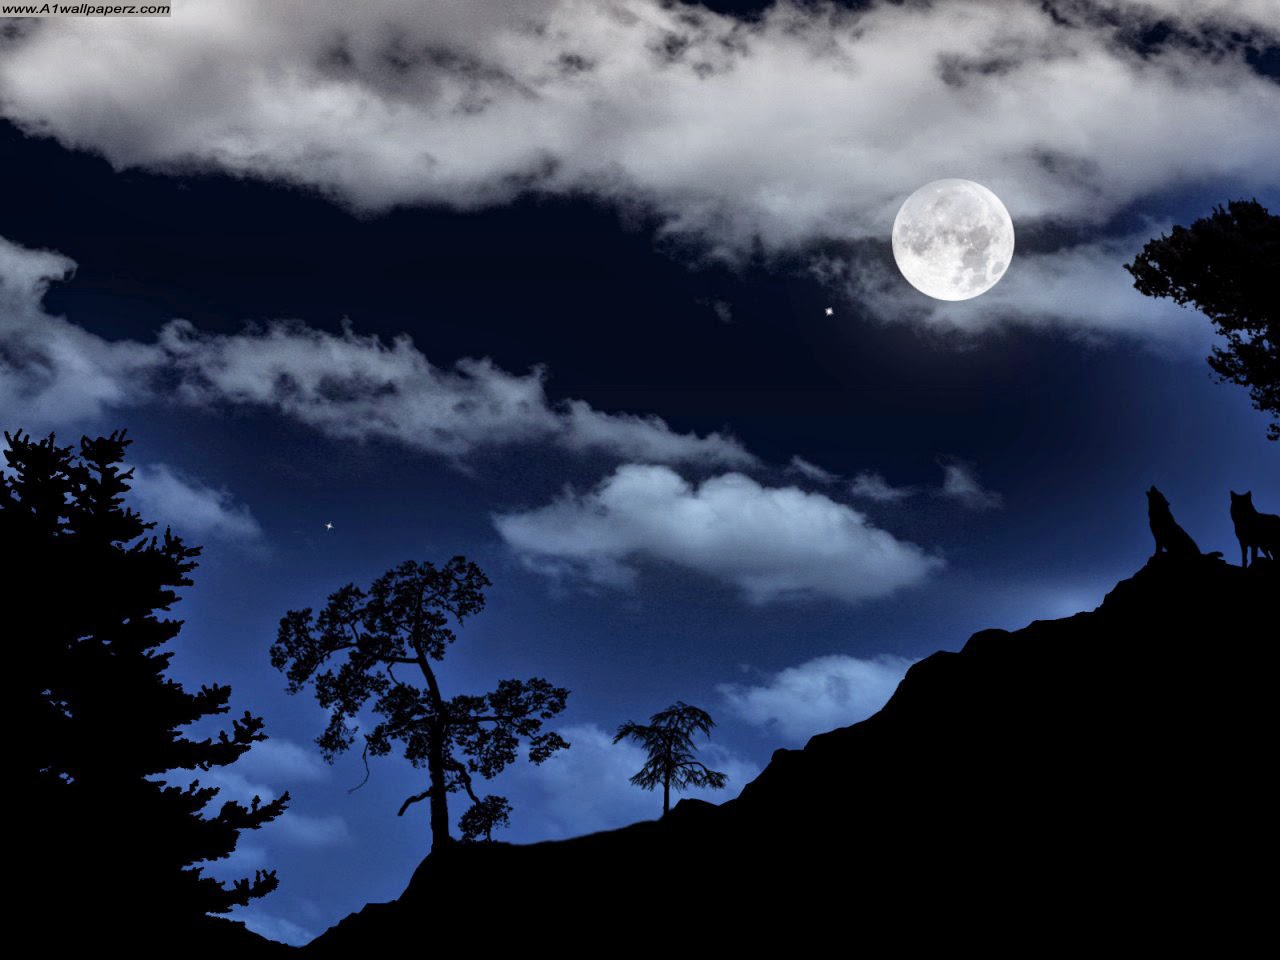 Moon HD Wallpaper Night Mode